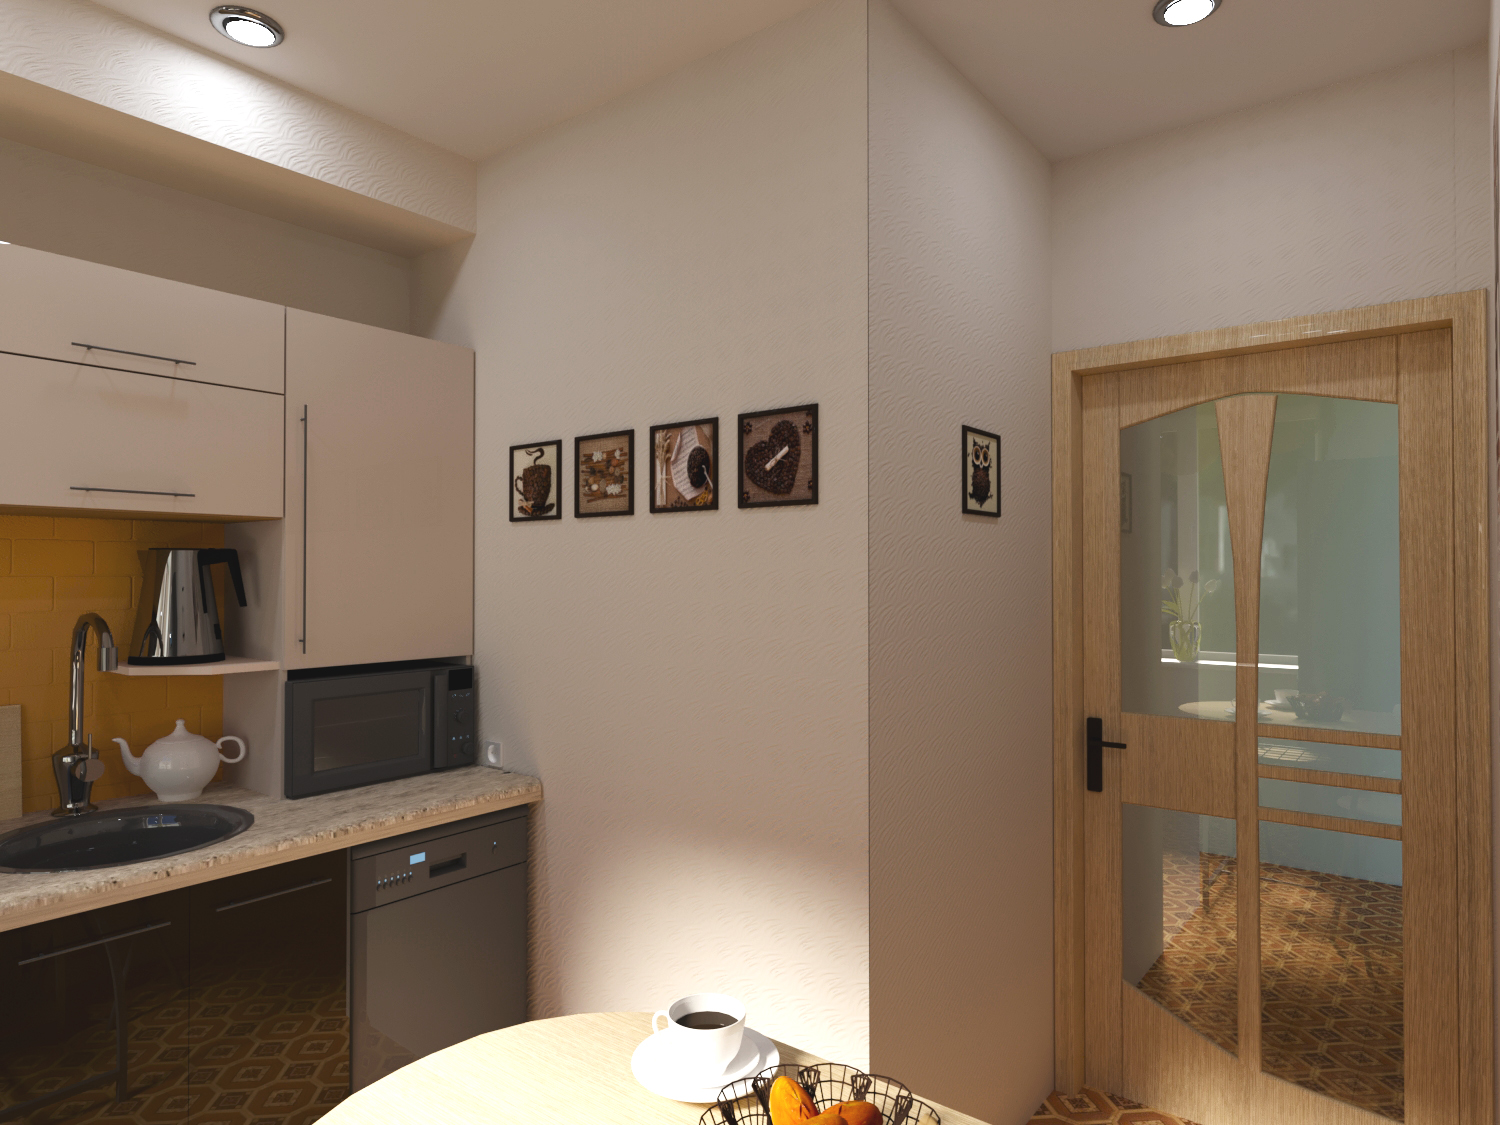 Kitchen five squares in 3d max corona render image